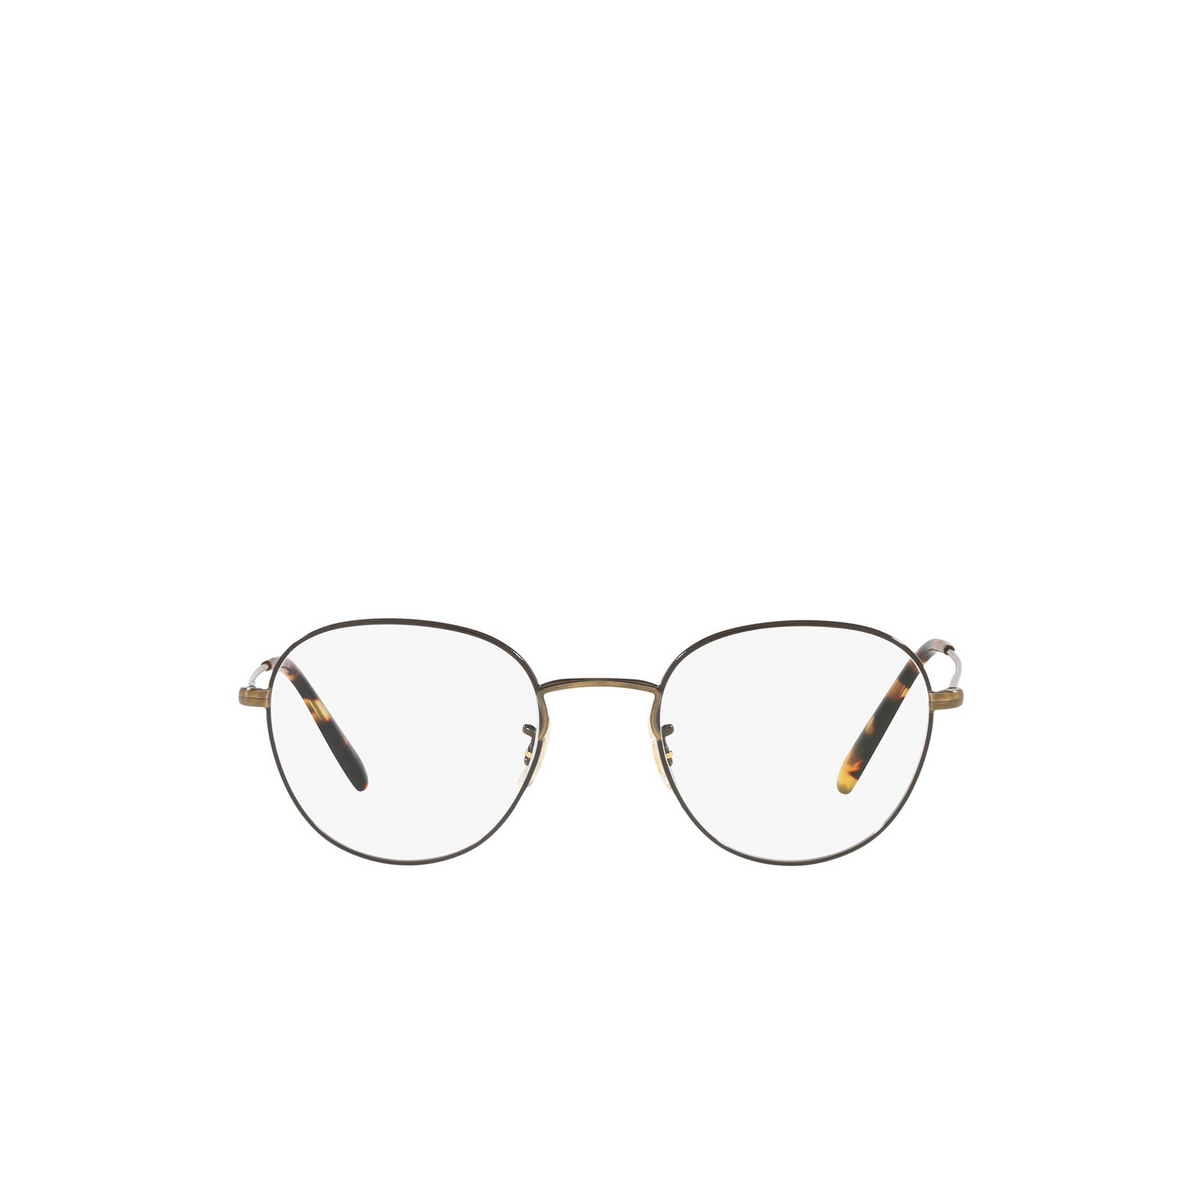 Oliver Peoples® Round Eyeglasses: Piercy OV1281 color Antique Gold / Black 5317 - front view.